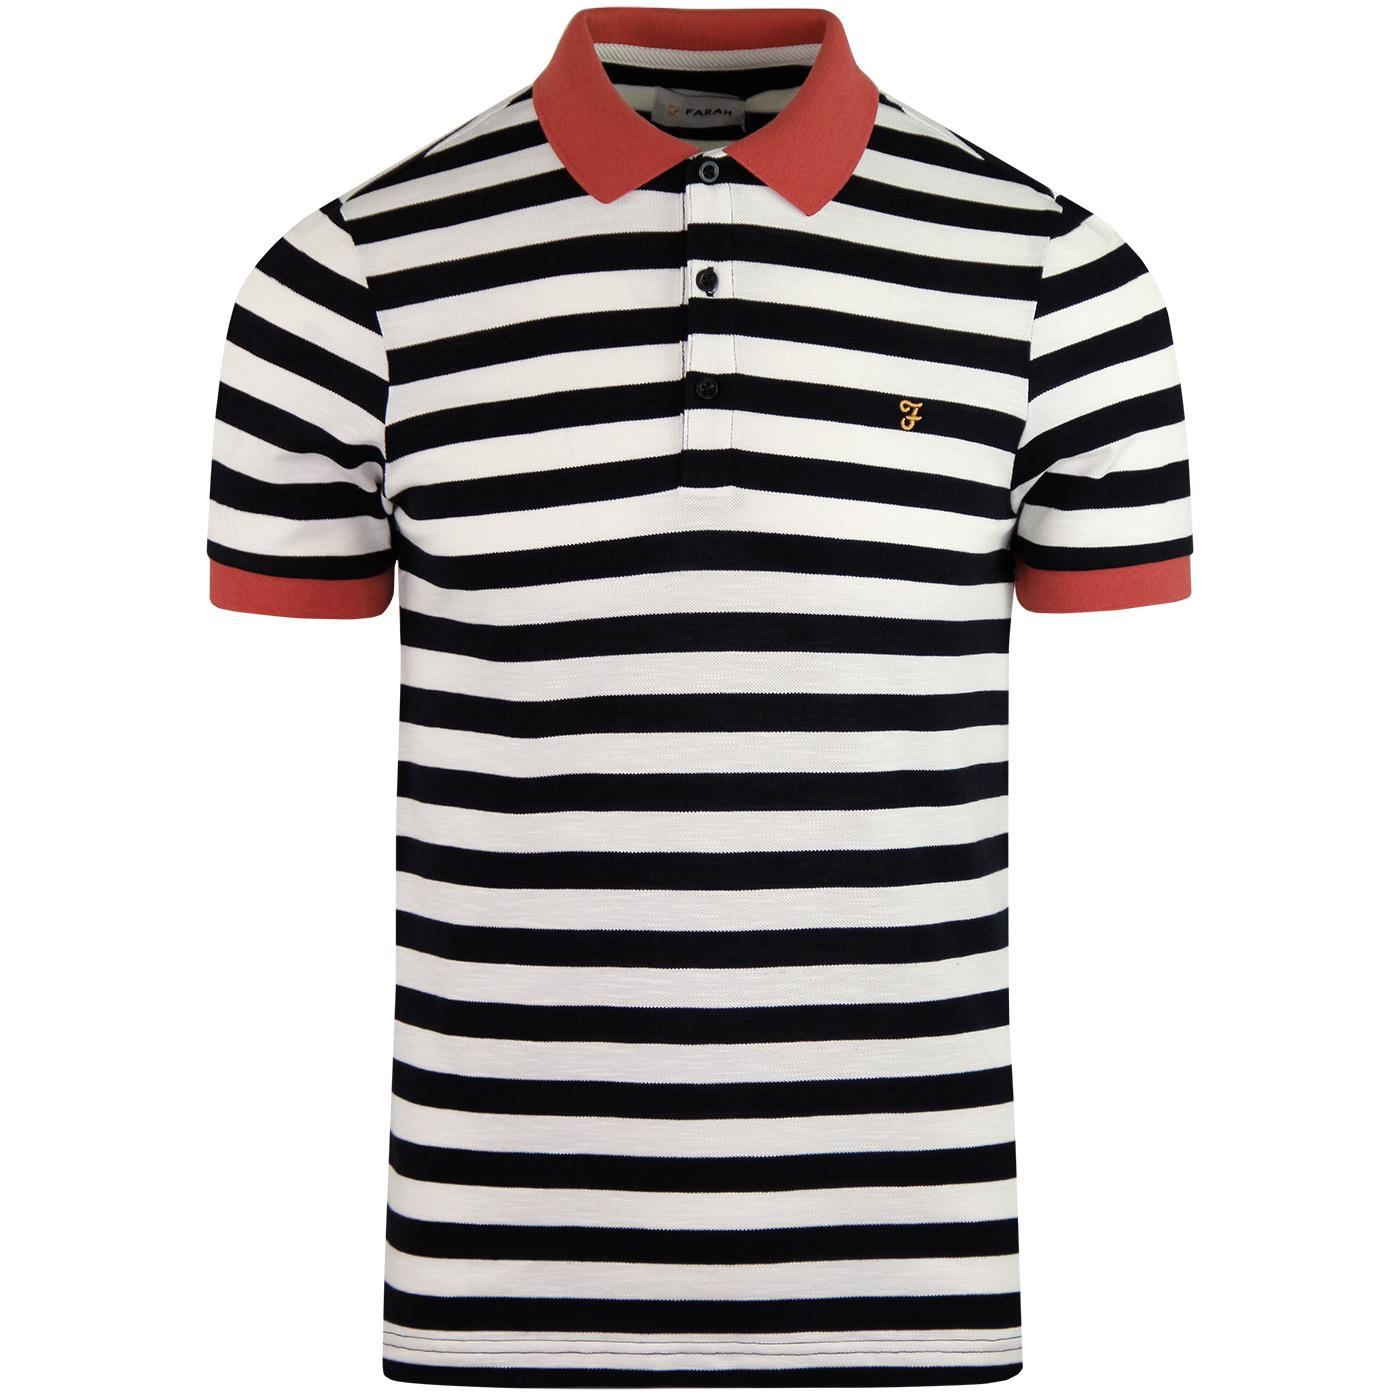 Witton FARAH Retro 60s Mod Pique Striped Polo (TN)